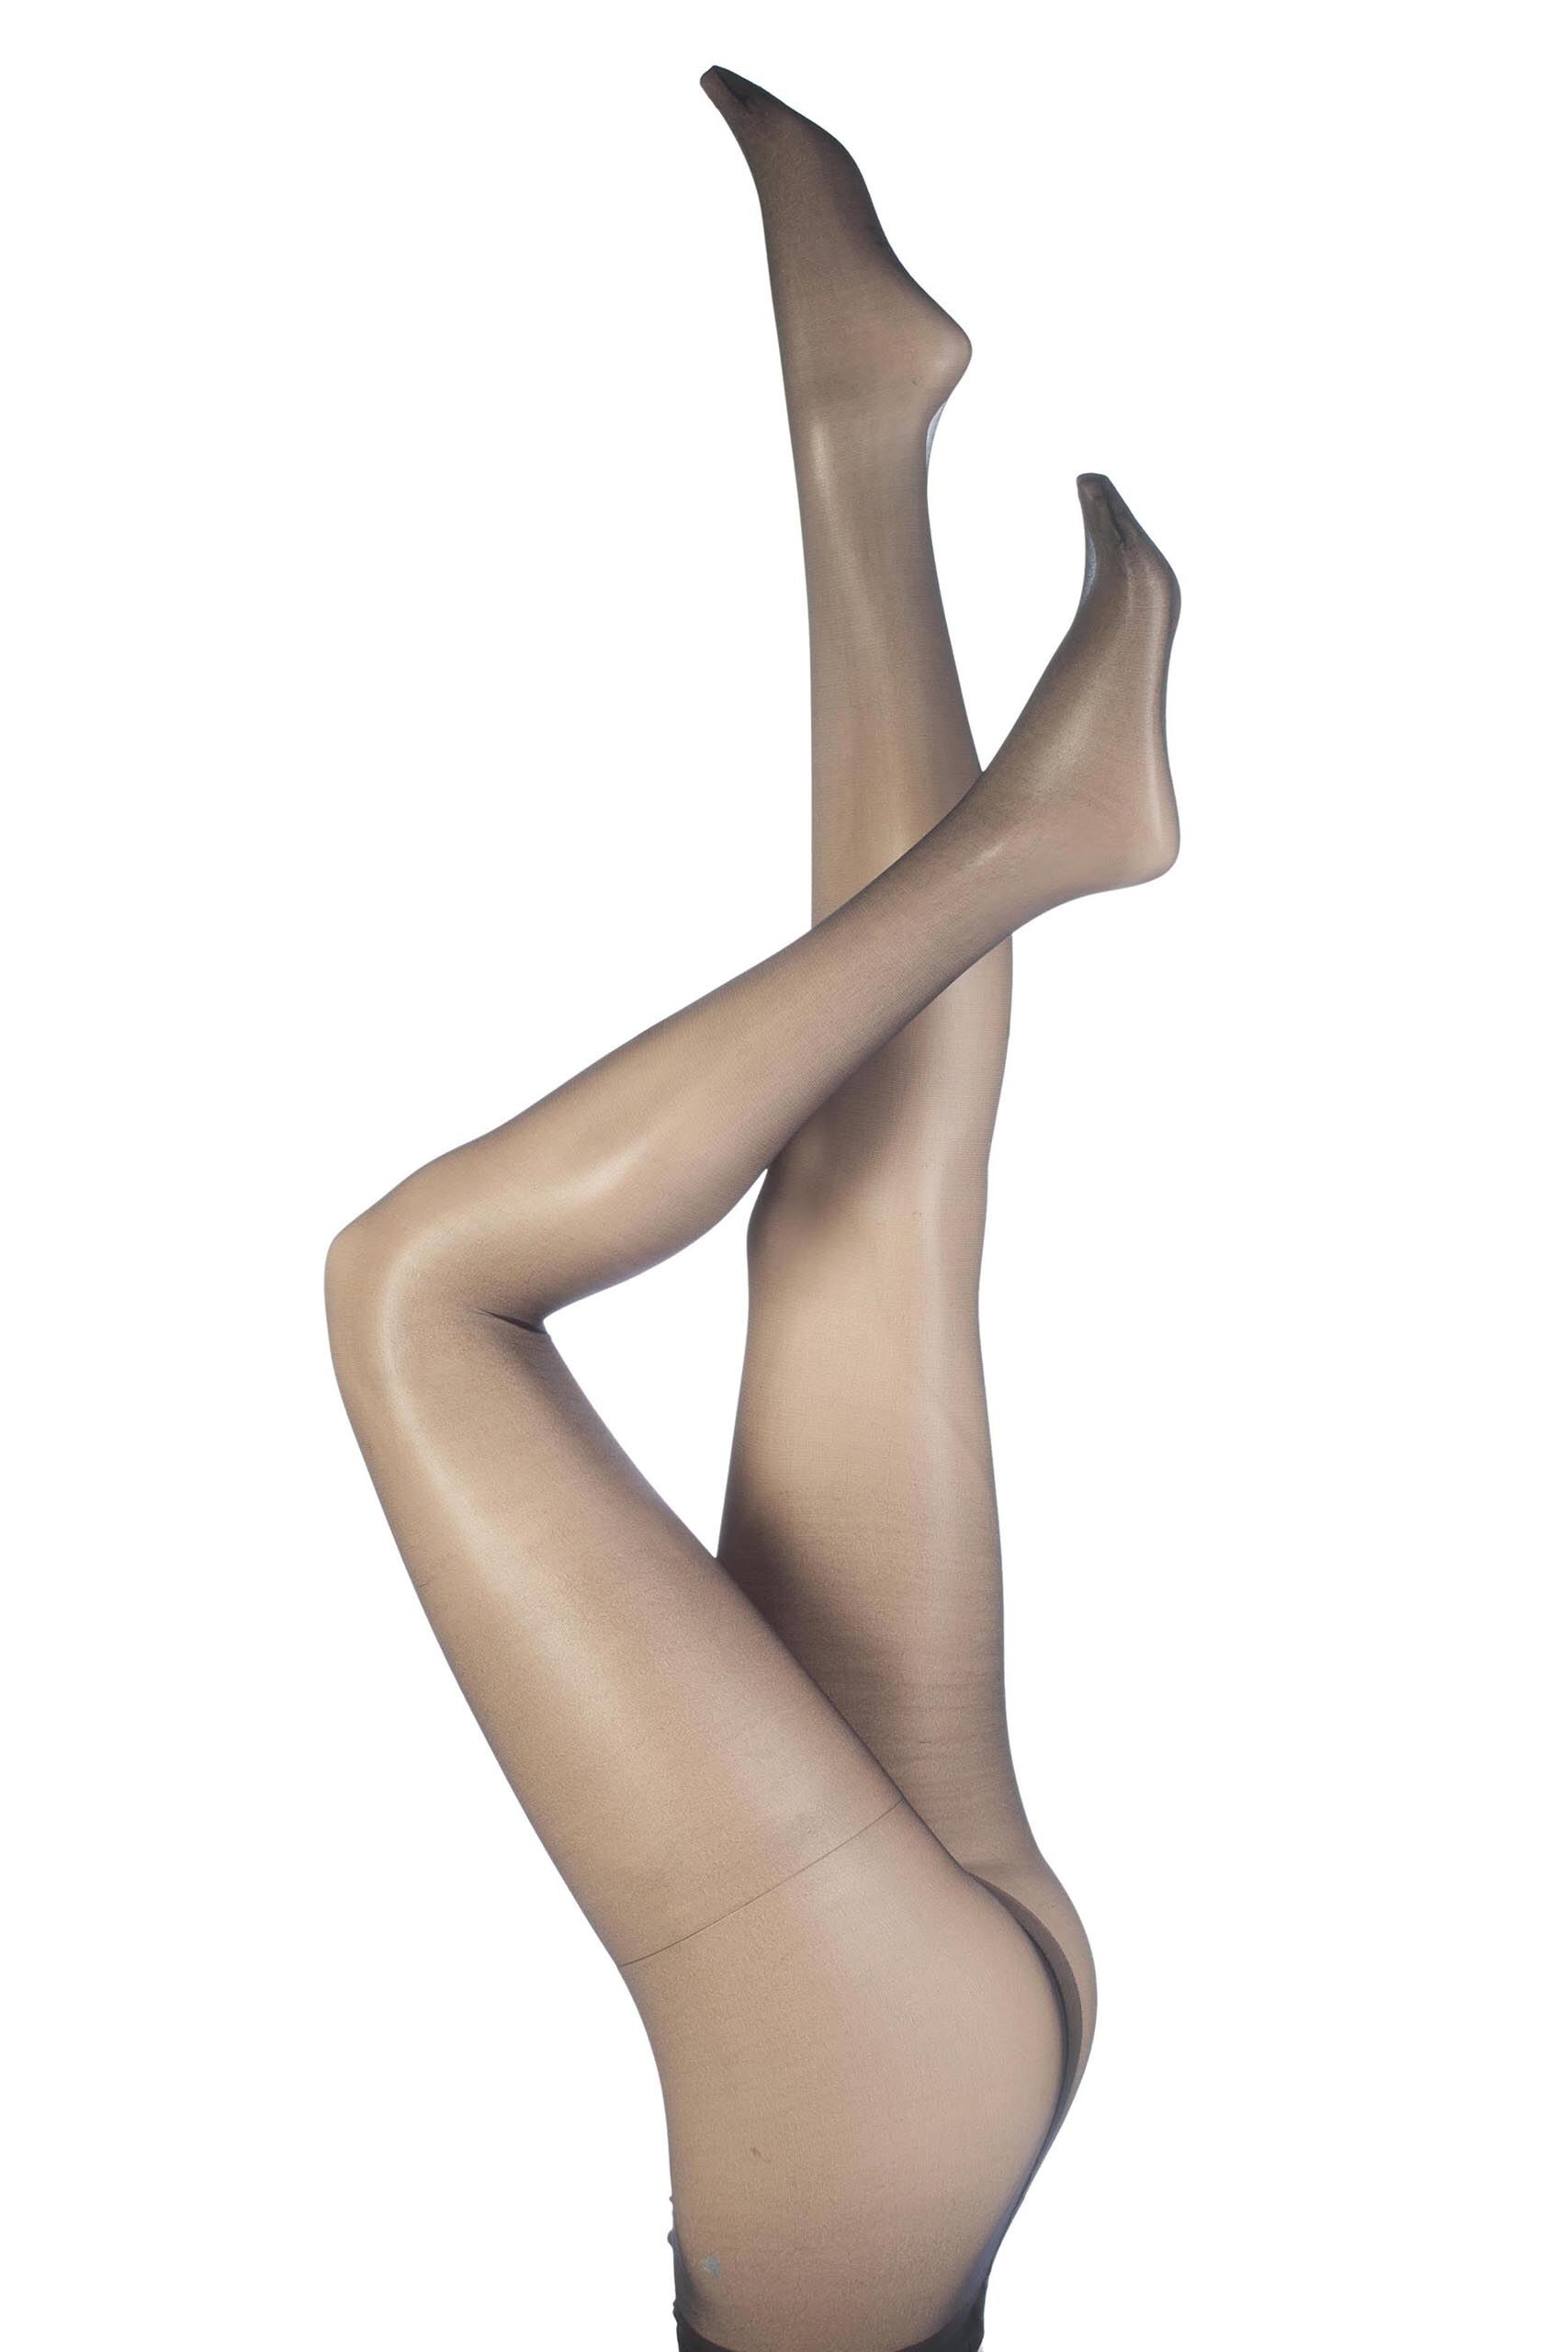 Image of 1 Pair Black 10 Denier Ultra Shine Tights with Silk Finish Ladies Medium - Aristoc